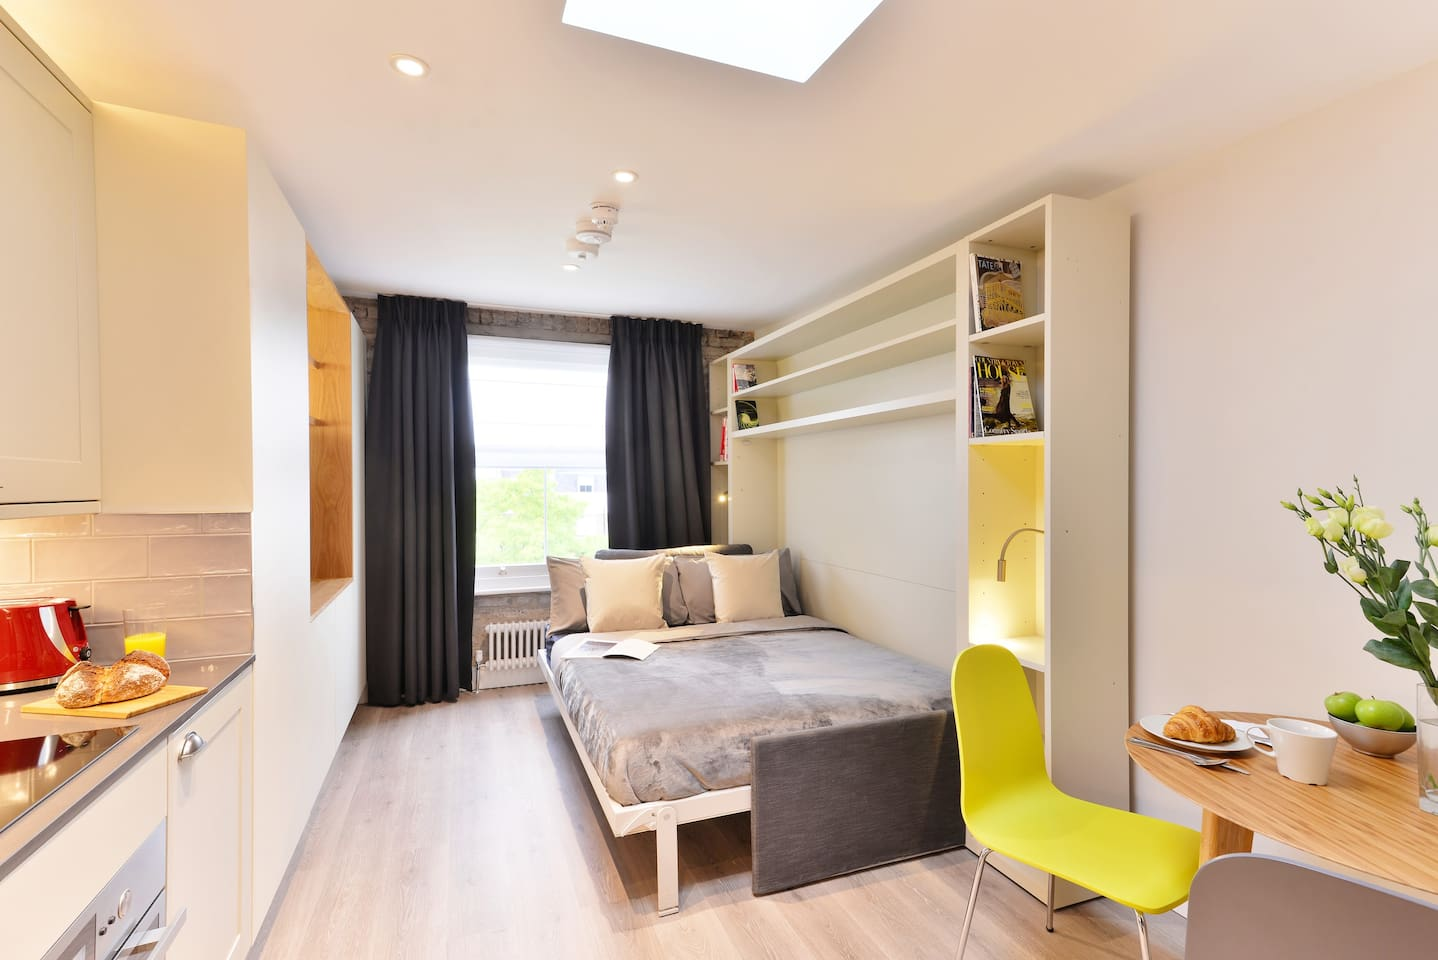 Nice and calm studio, with beautiful views to the garden. Comfortable wall bed. Latest technology system, easy to use and space efficient to enjoy as much as possible your stay. The bed will be ready for your arrival.